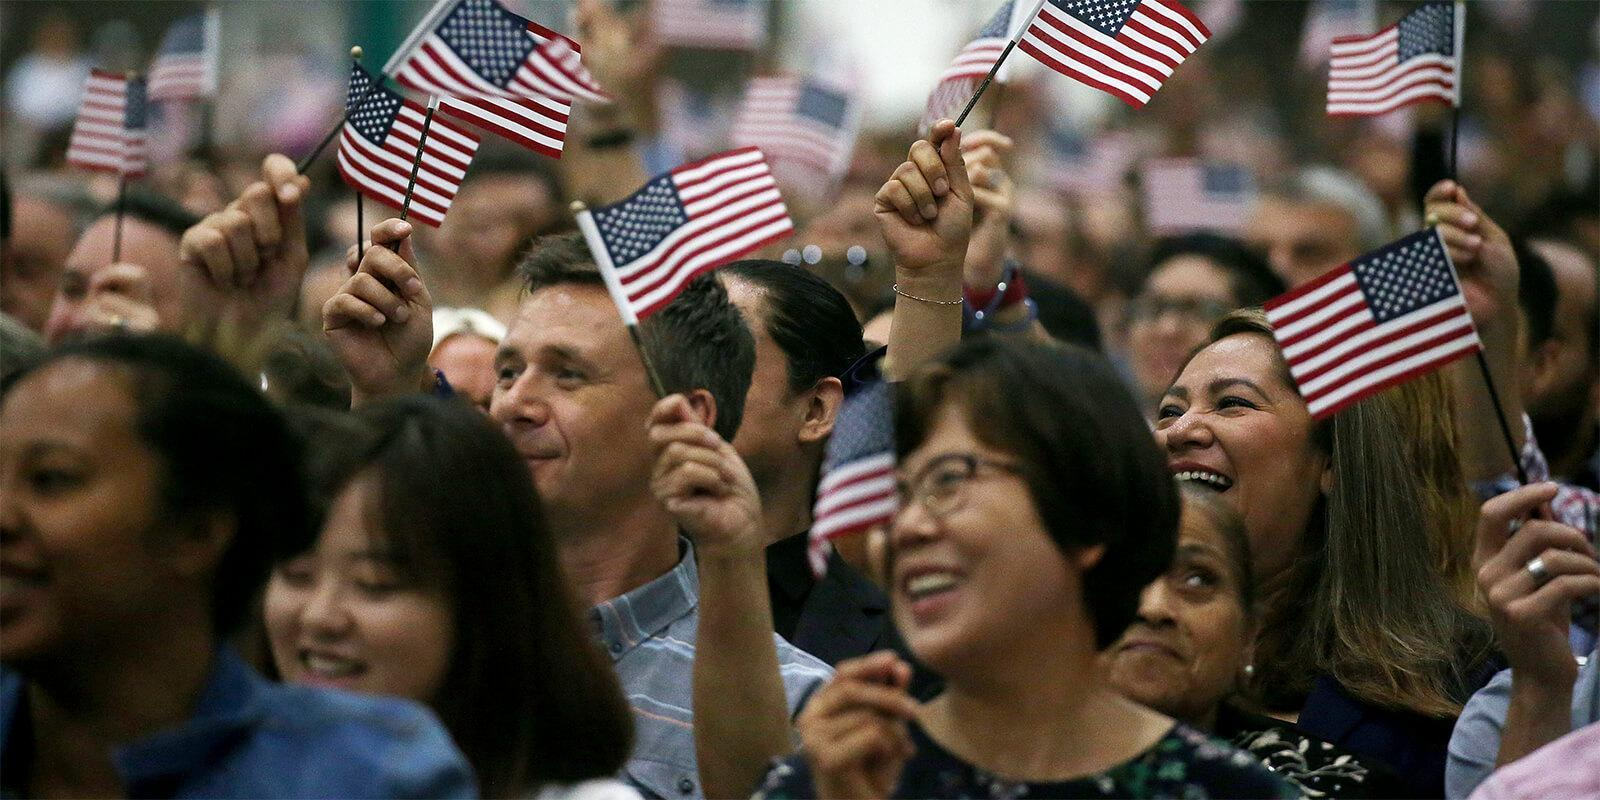 Diverse crowd of people waving small American flags